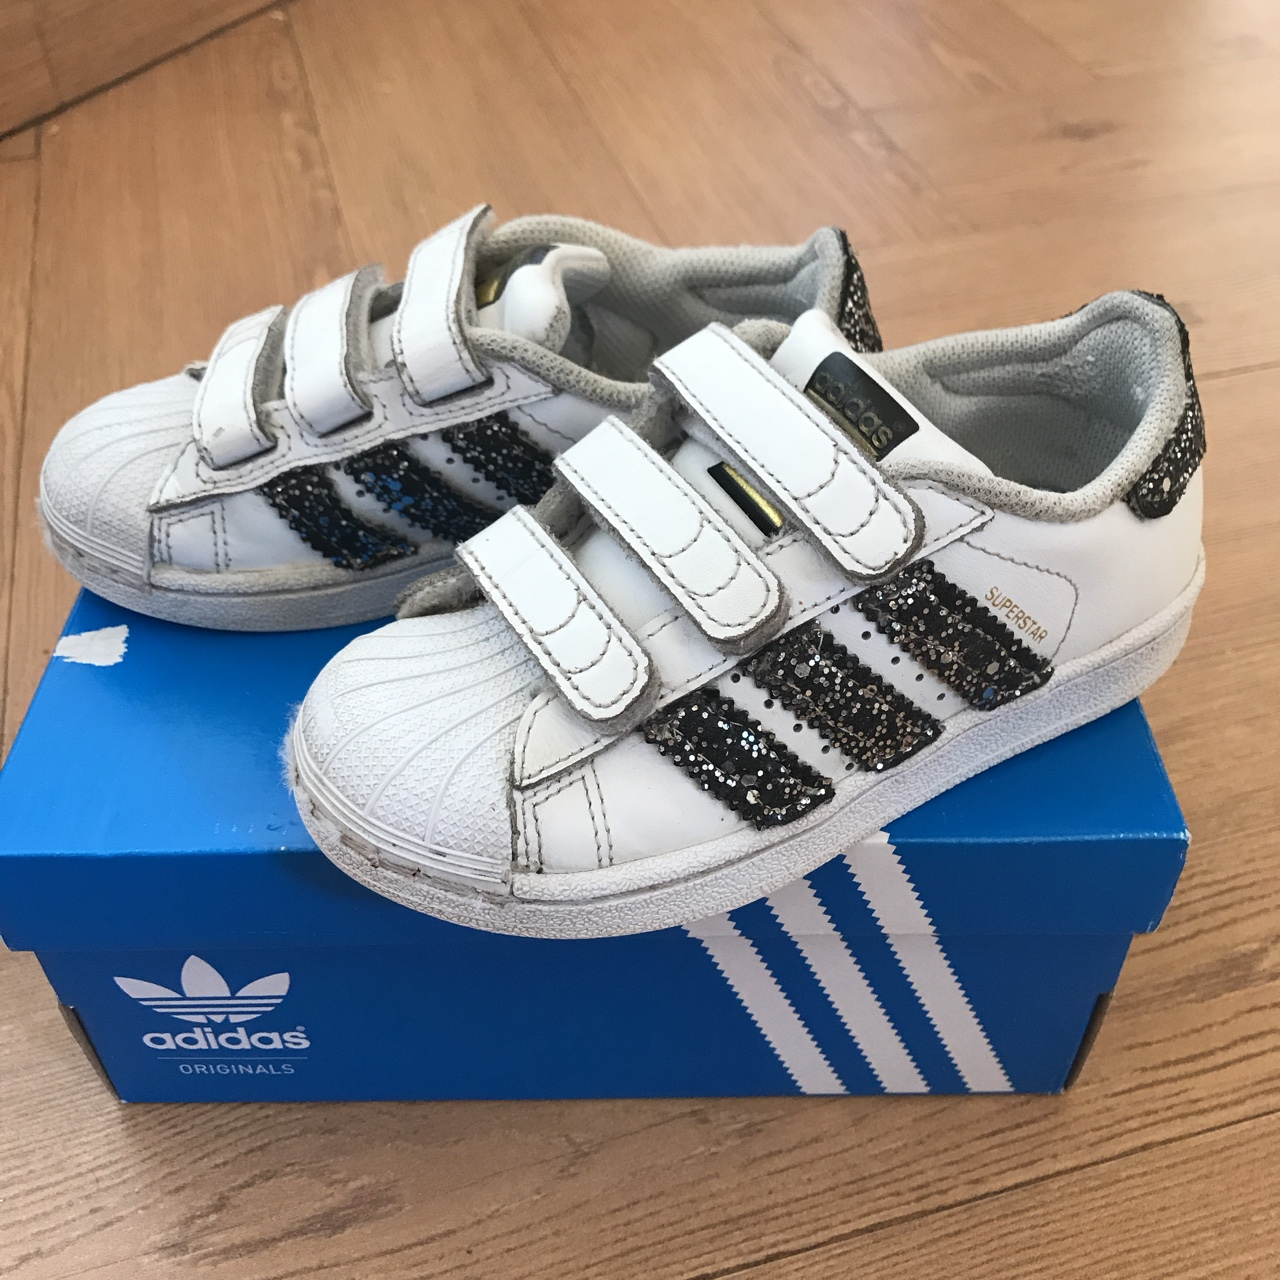 2adidas superstar foundation nere